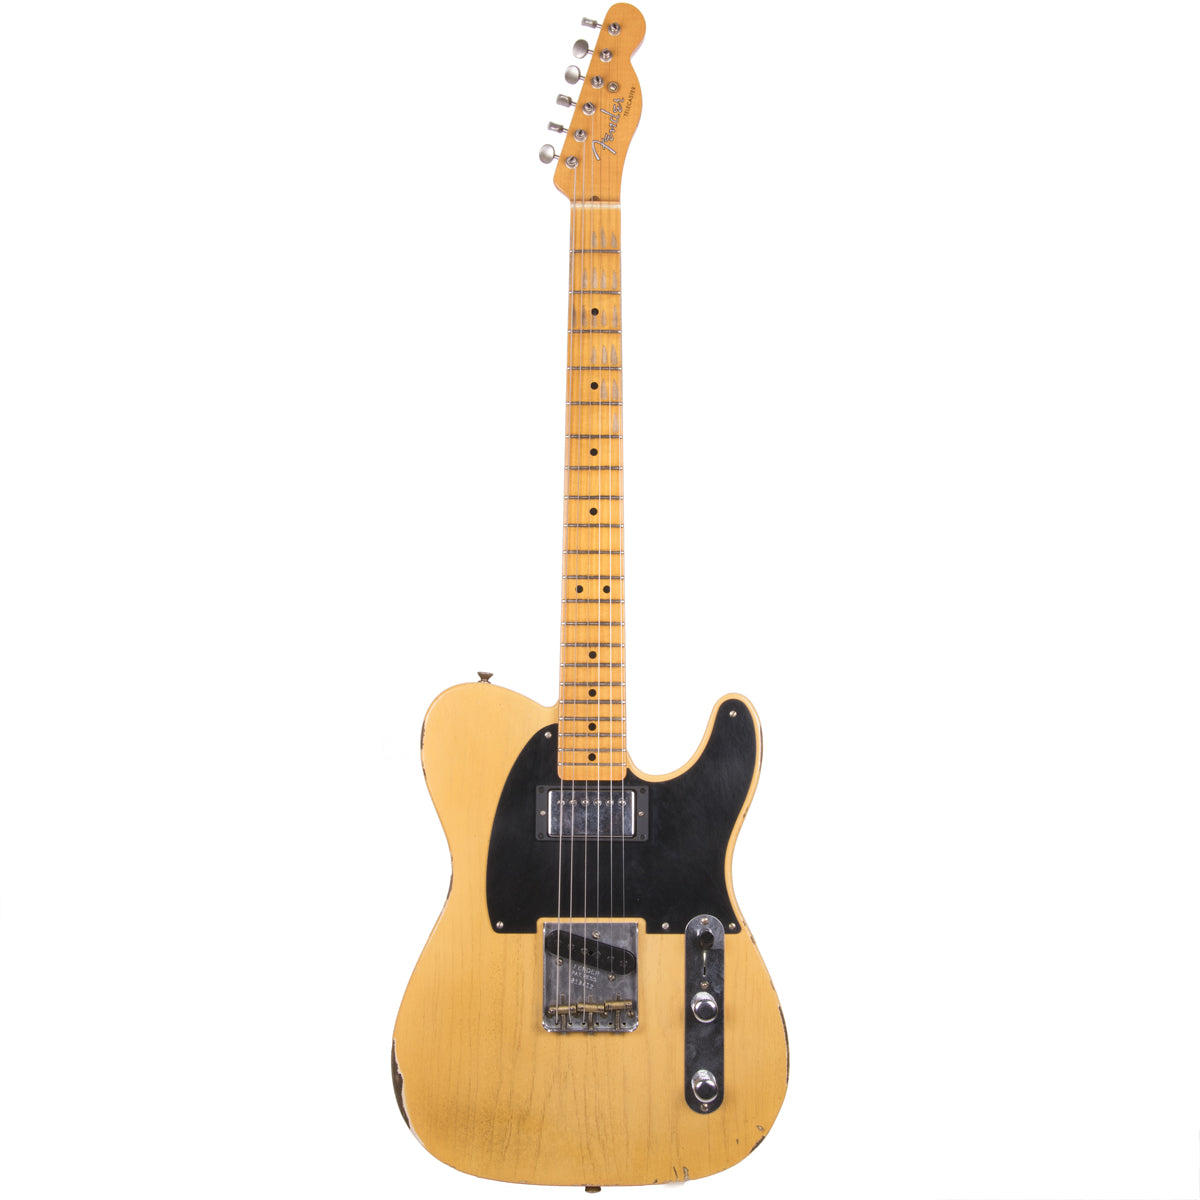 Fender Custom Shop Limited Edition '51 HS Tele, Relic - Aged Nocaster Blonde